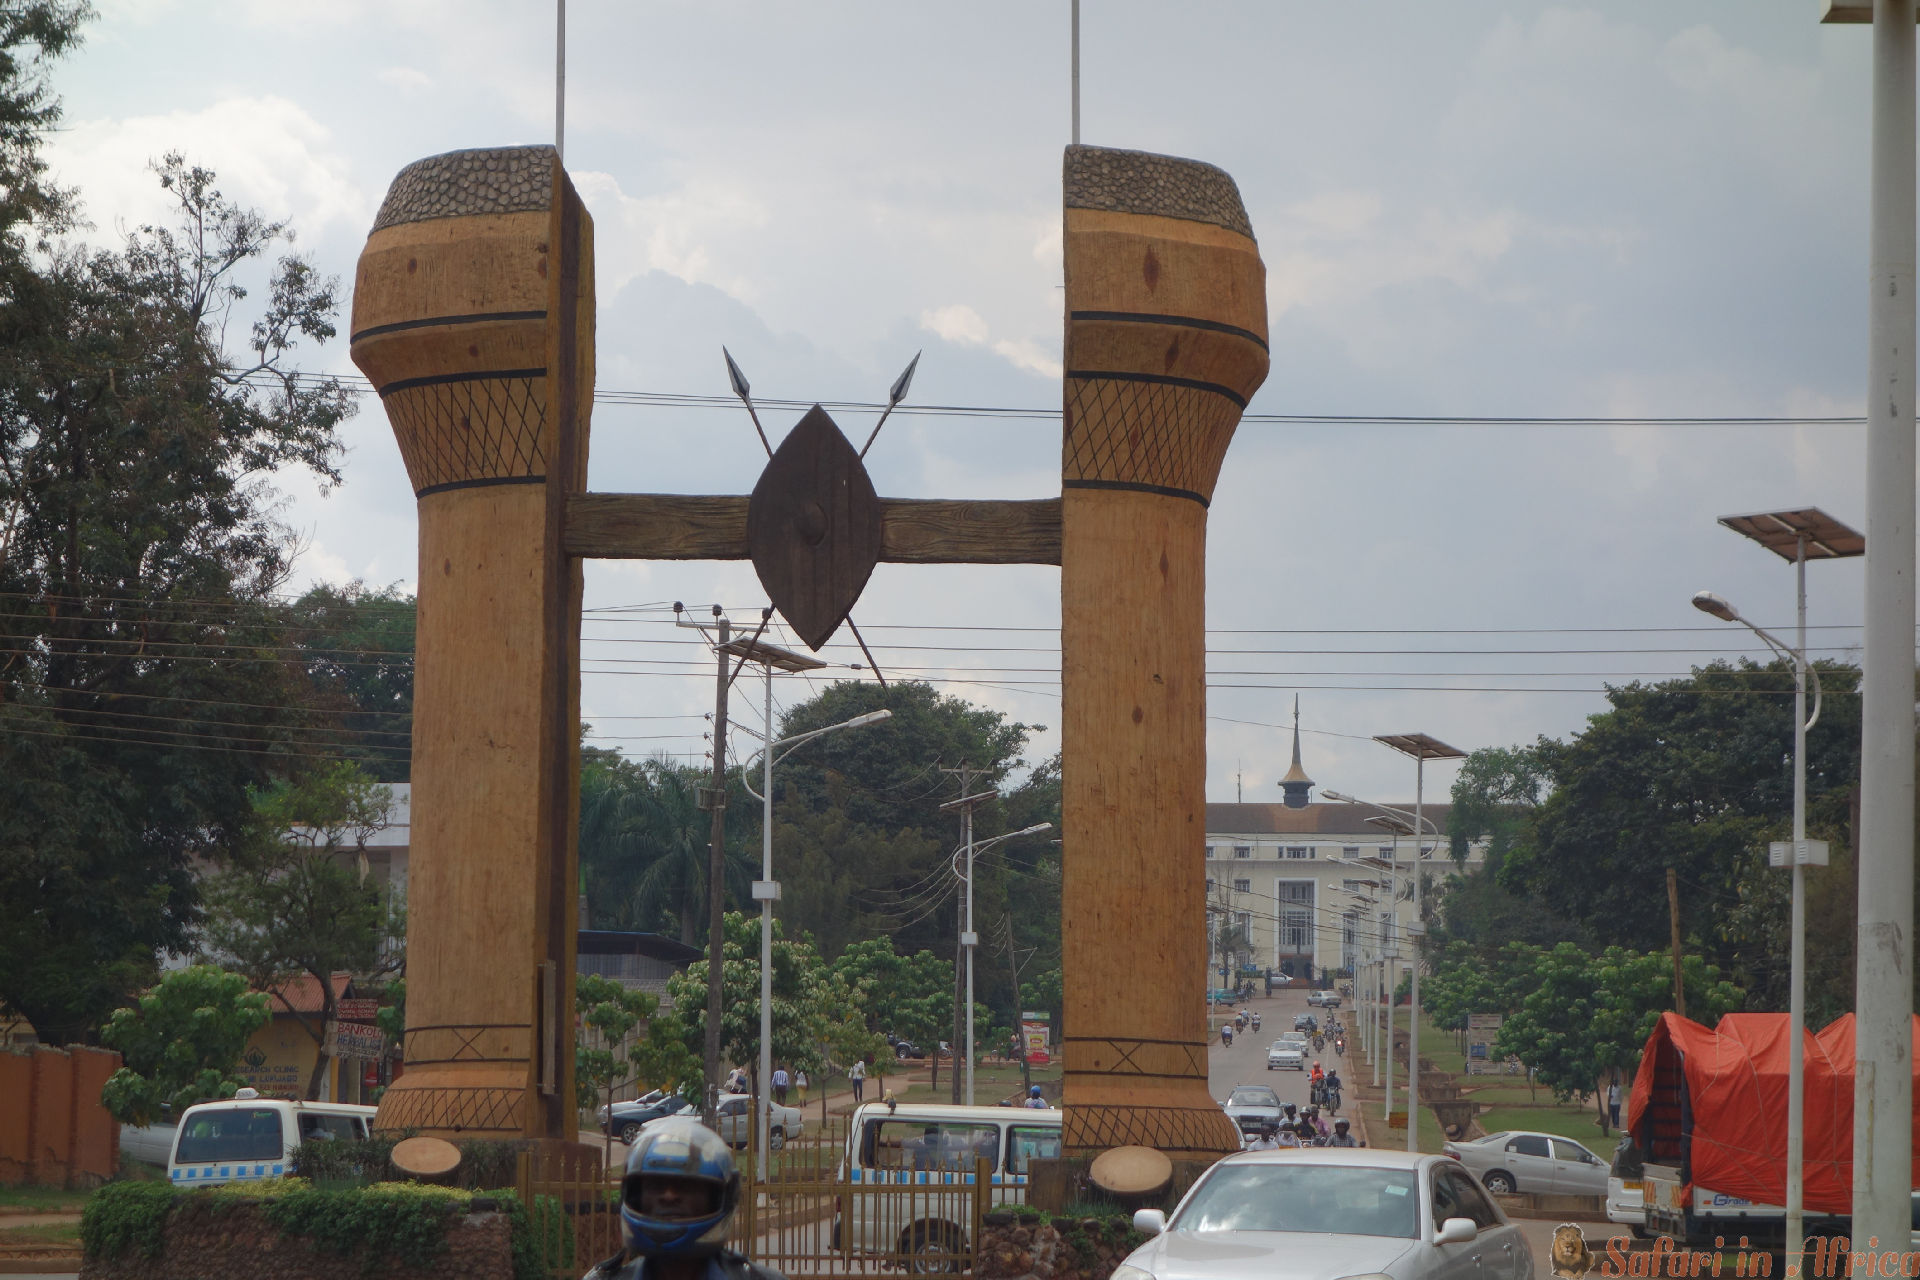 The Buganda monument in Kampala. Uganda